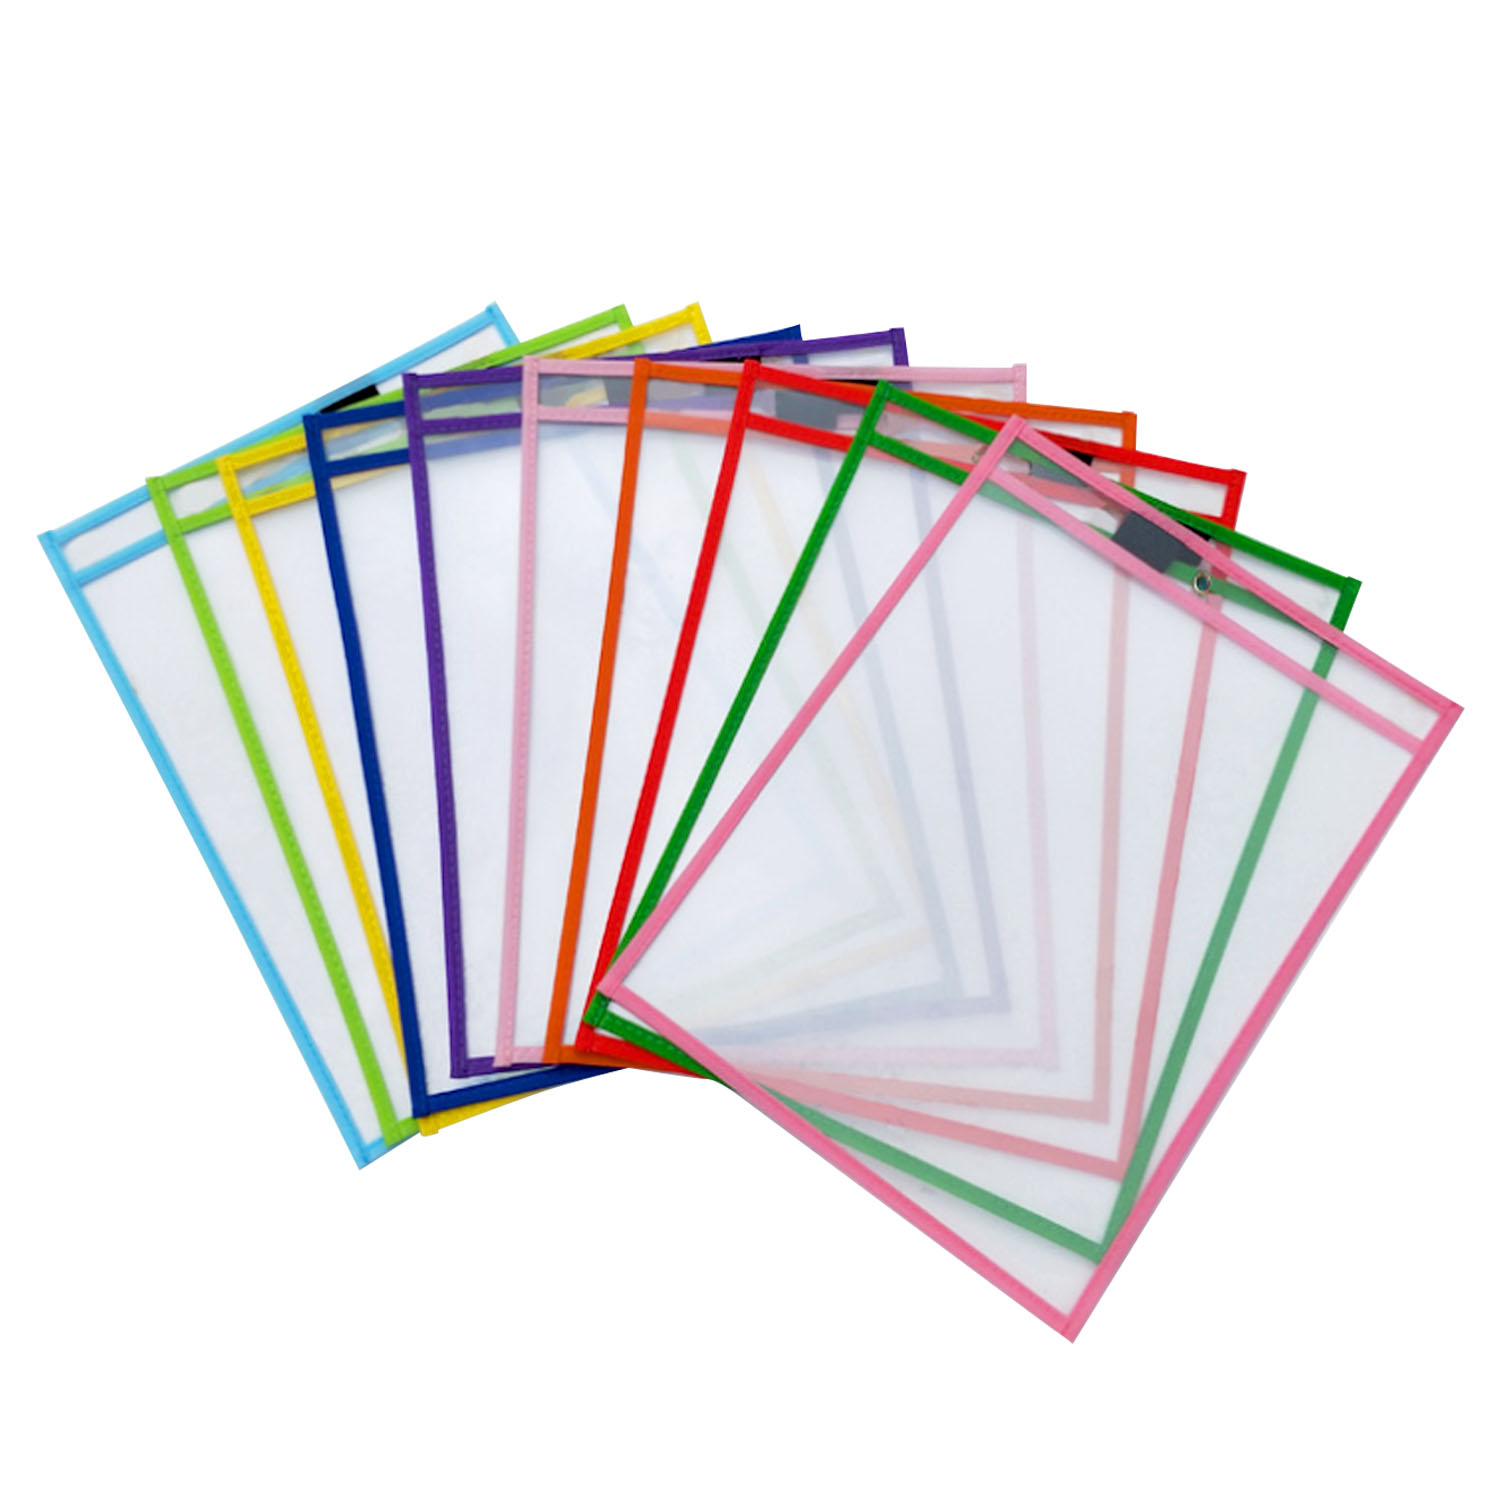 10PCS Reusable PVC Dry Erase Pockets Sleeves Sheet Protectors With Pen Holder For Kids Children Students School Classroom